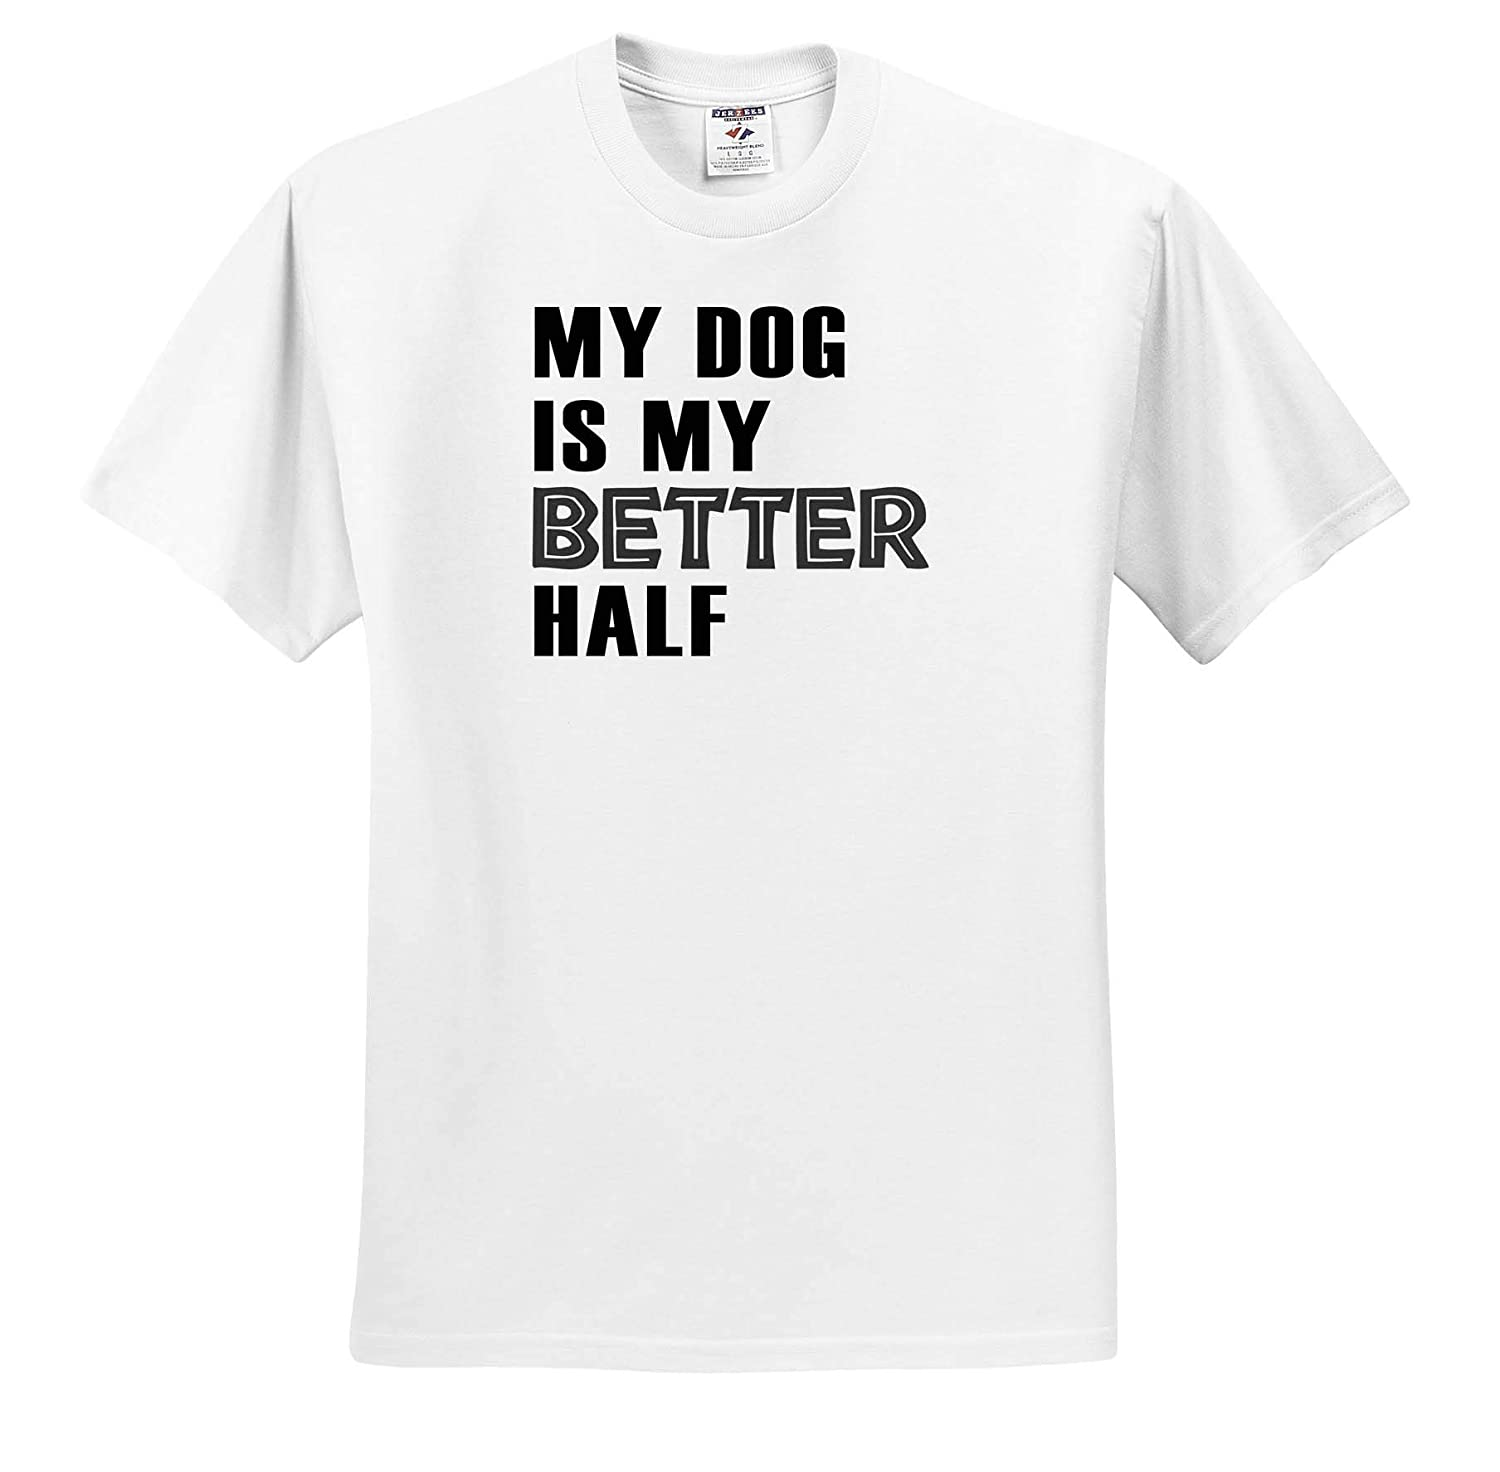 Adult T-Shirt XL Quotes and Sayings ts/_319232 My Dog is My Better Half 3dRose Anne Marie Baugh